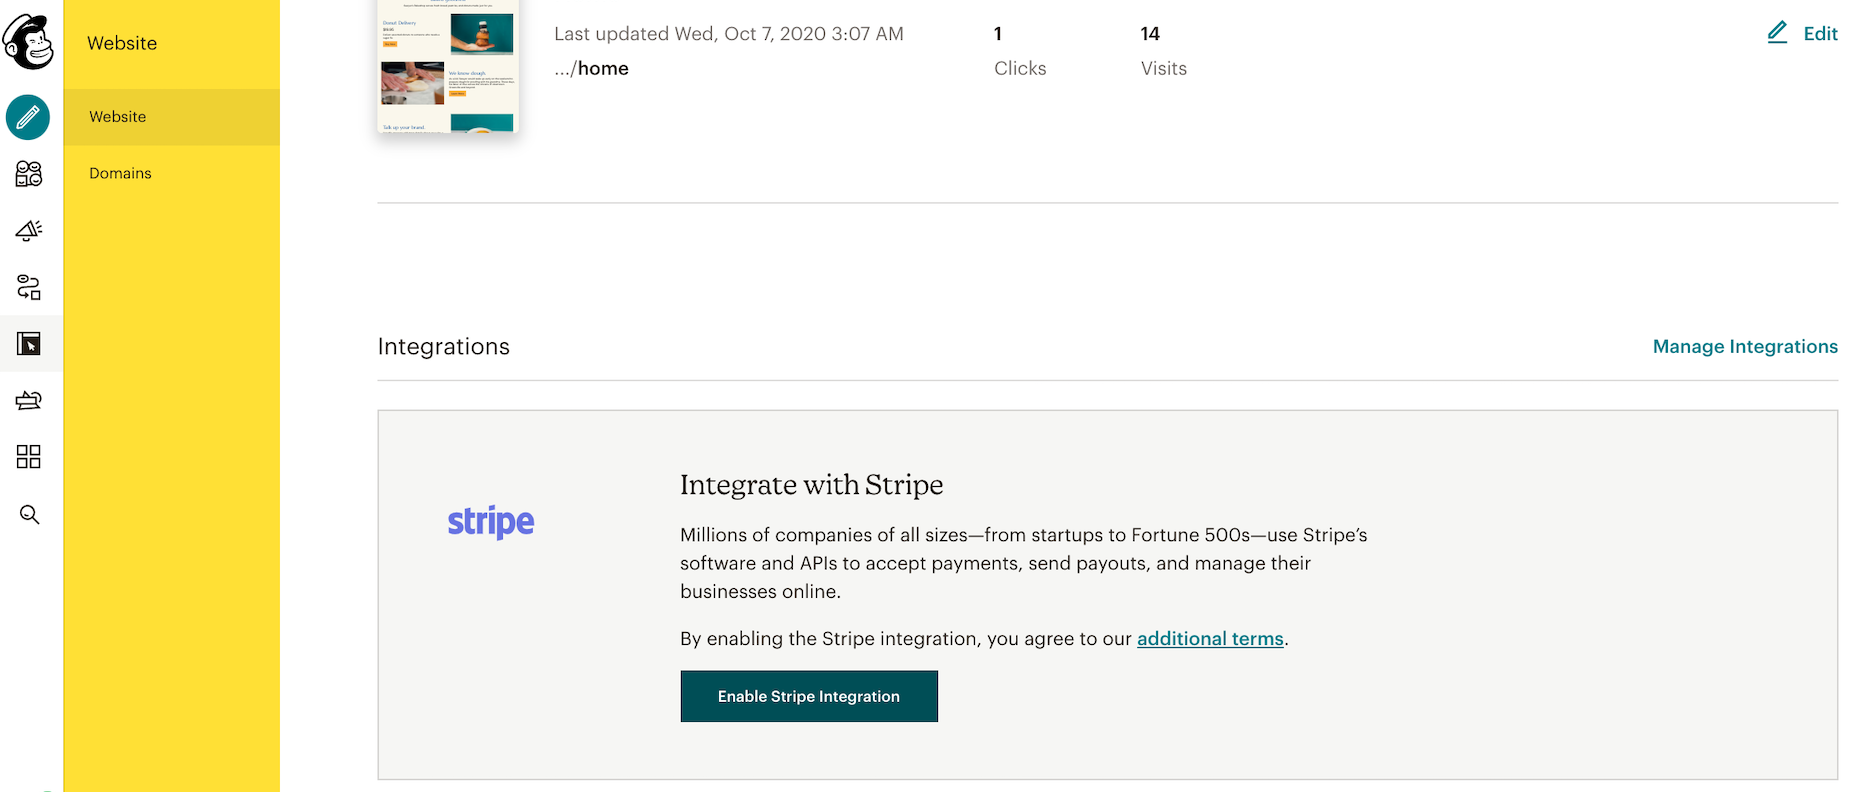 Mailchimp Websites screenshot 1